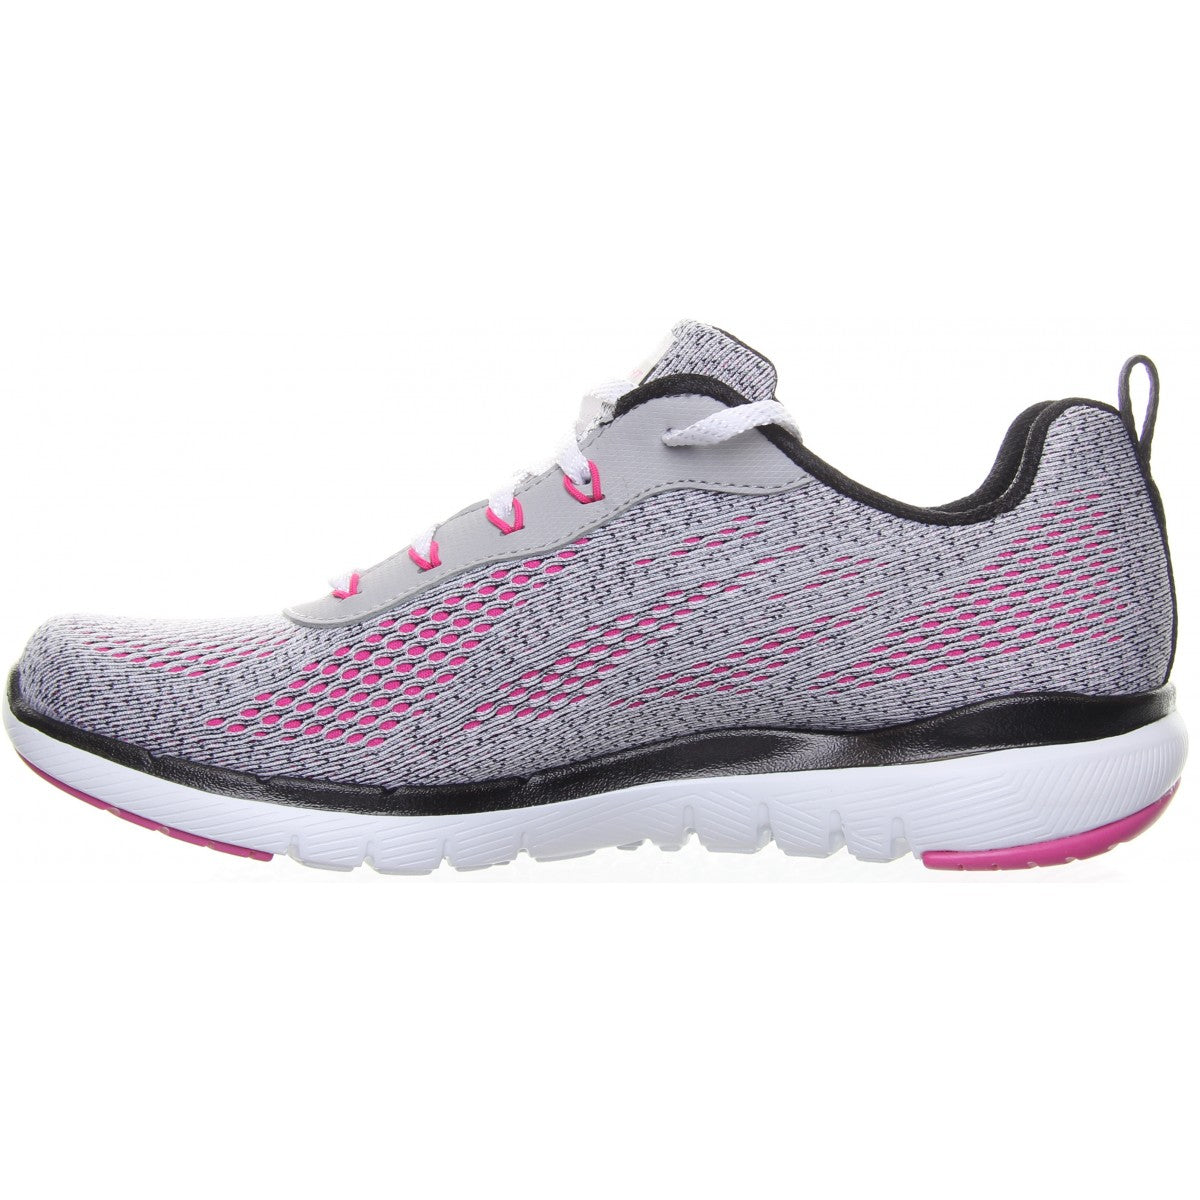 Skechers Grey/Pink